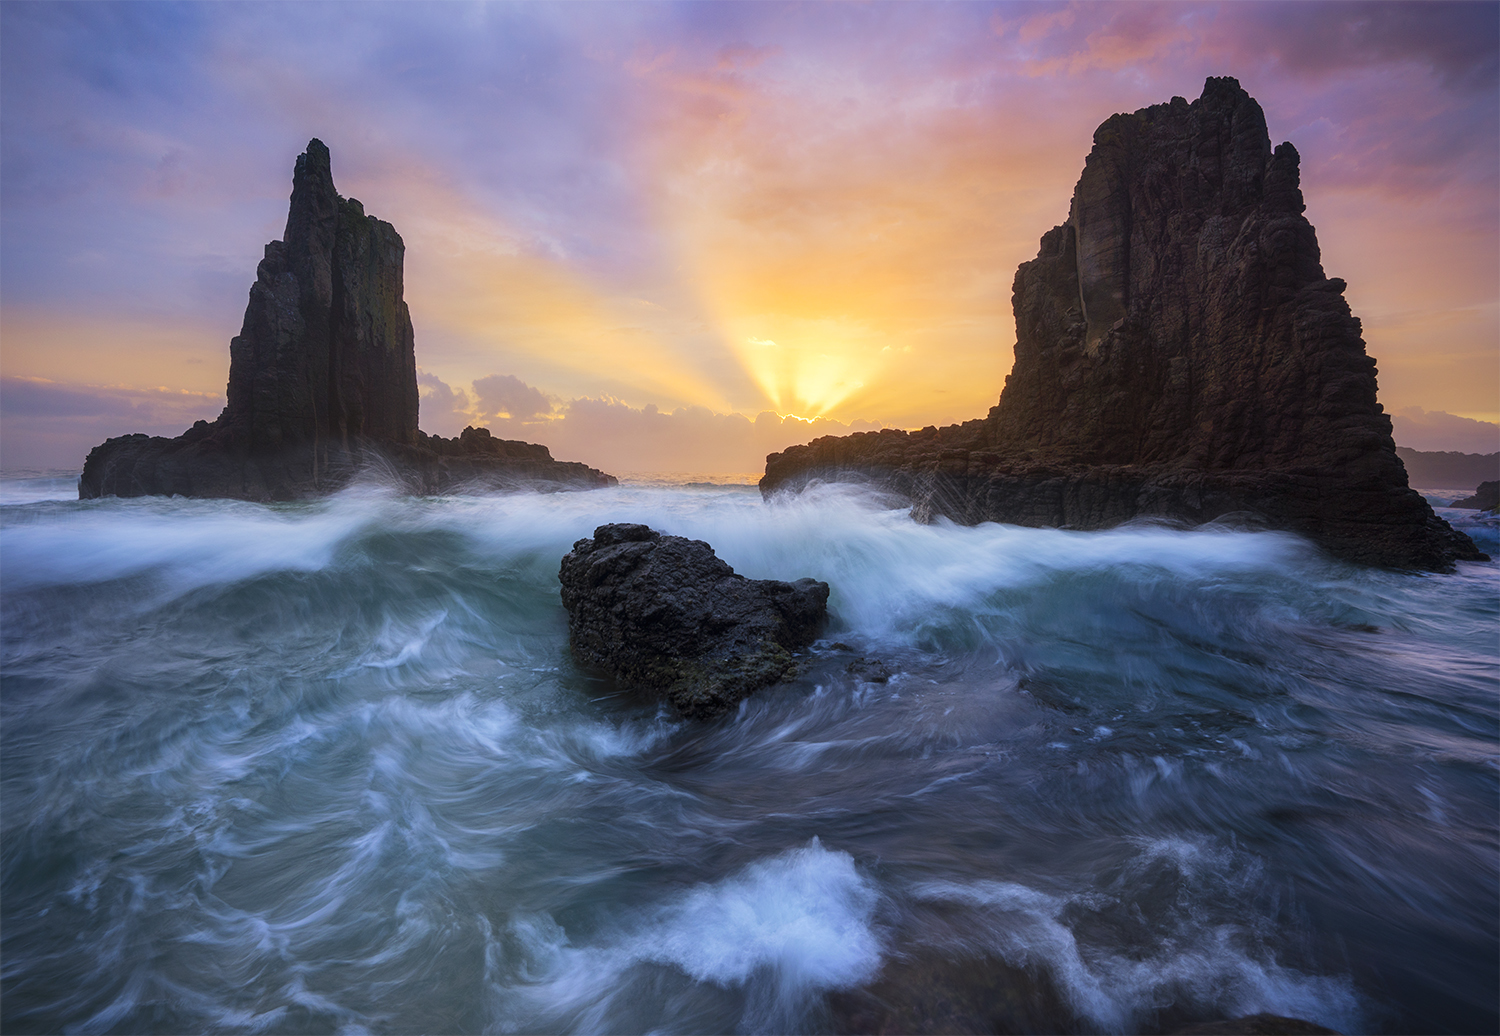 The Cathedral Rocks, Kiama